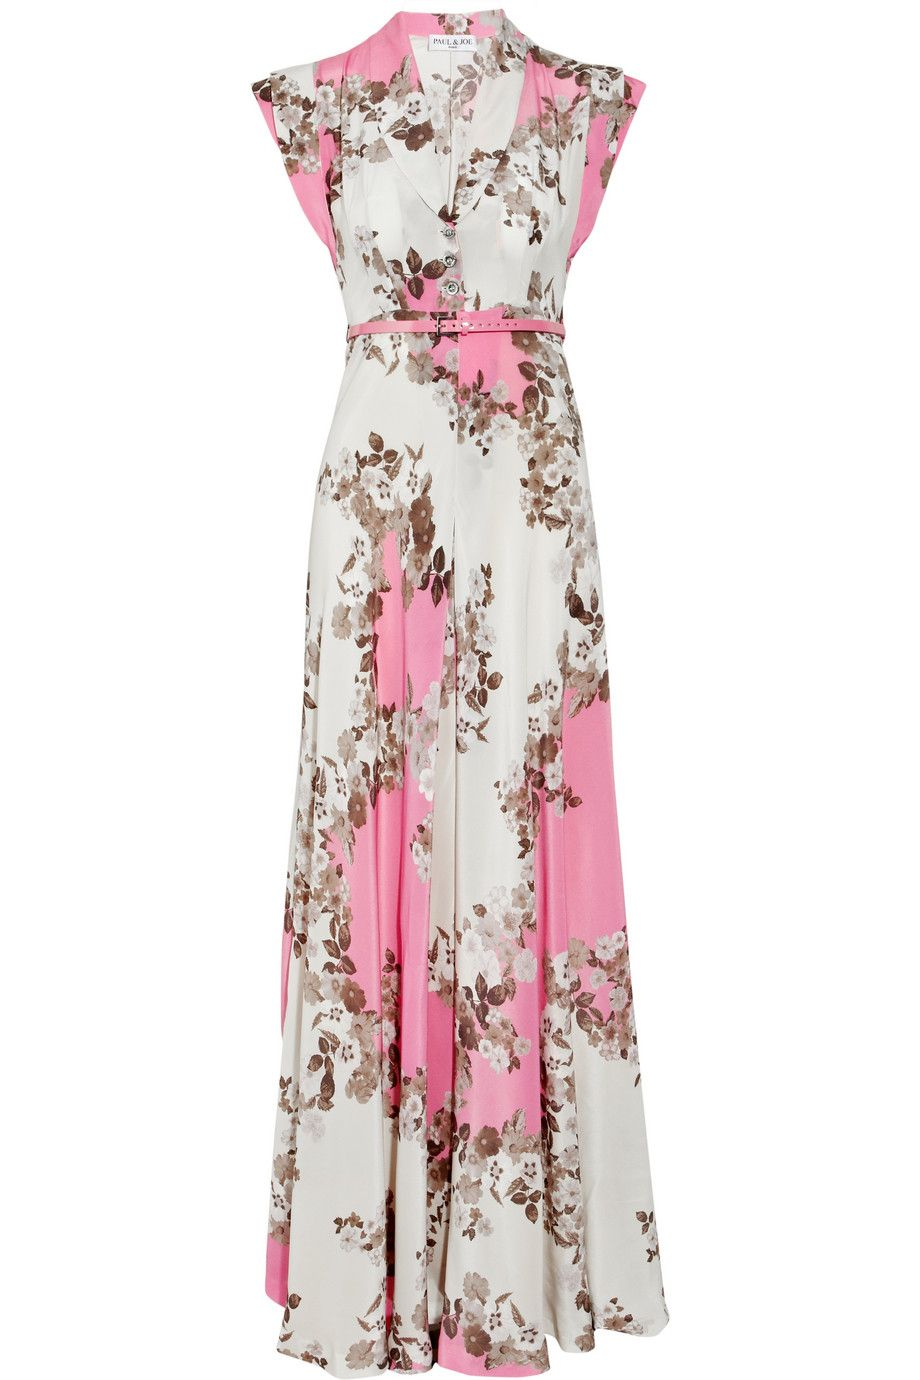 Floral maxi dresses for wedding home clothing dresses for Floral print dresses for weddings